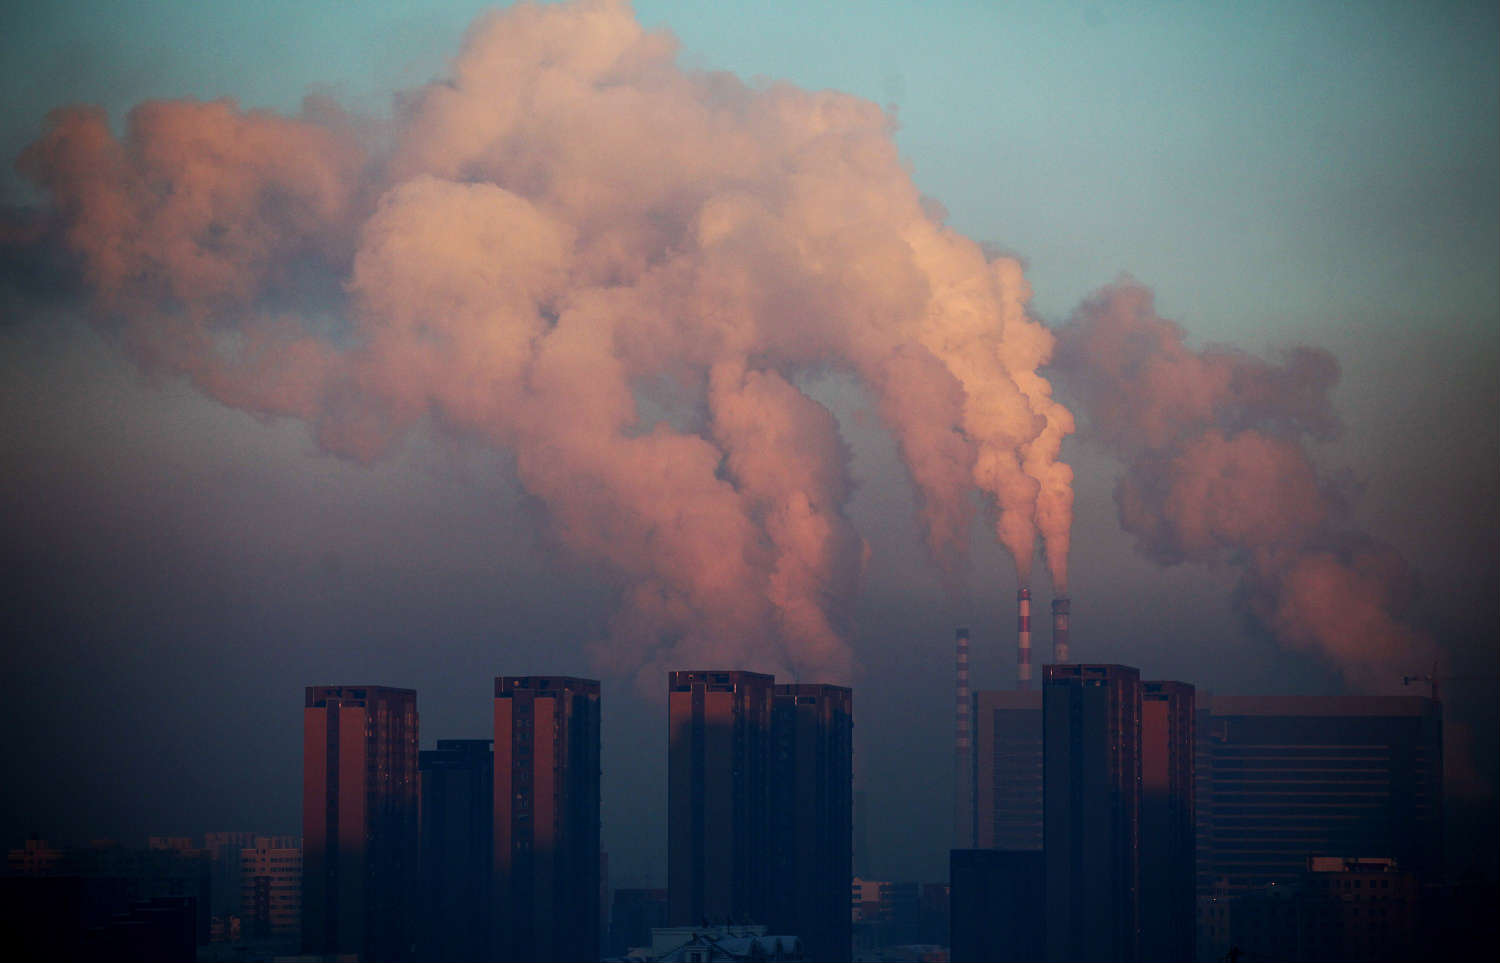 Coal plants like this one in China produce 40% of the world's electricity